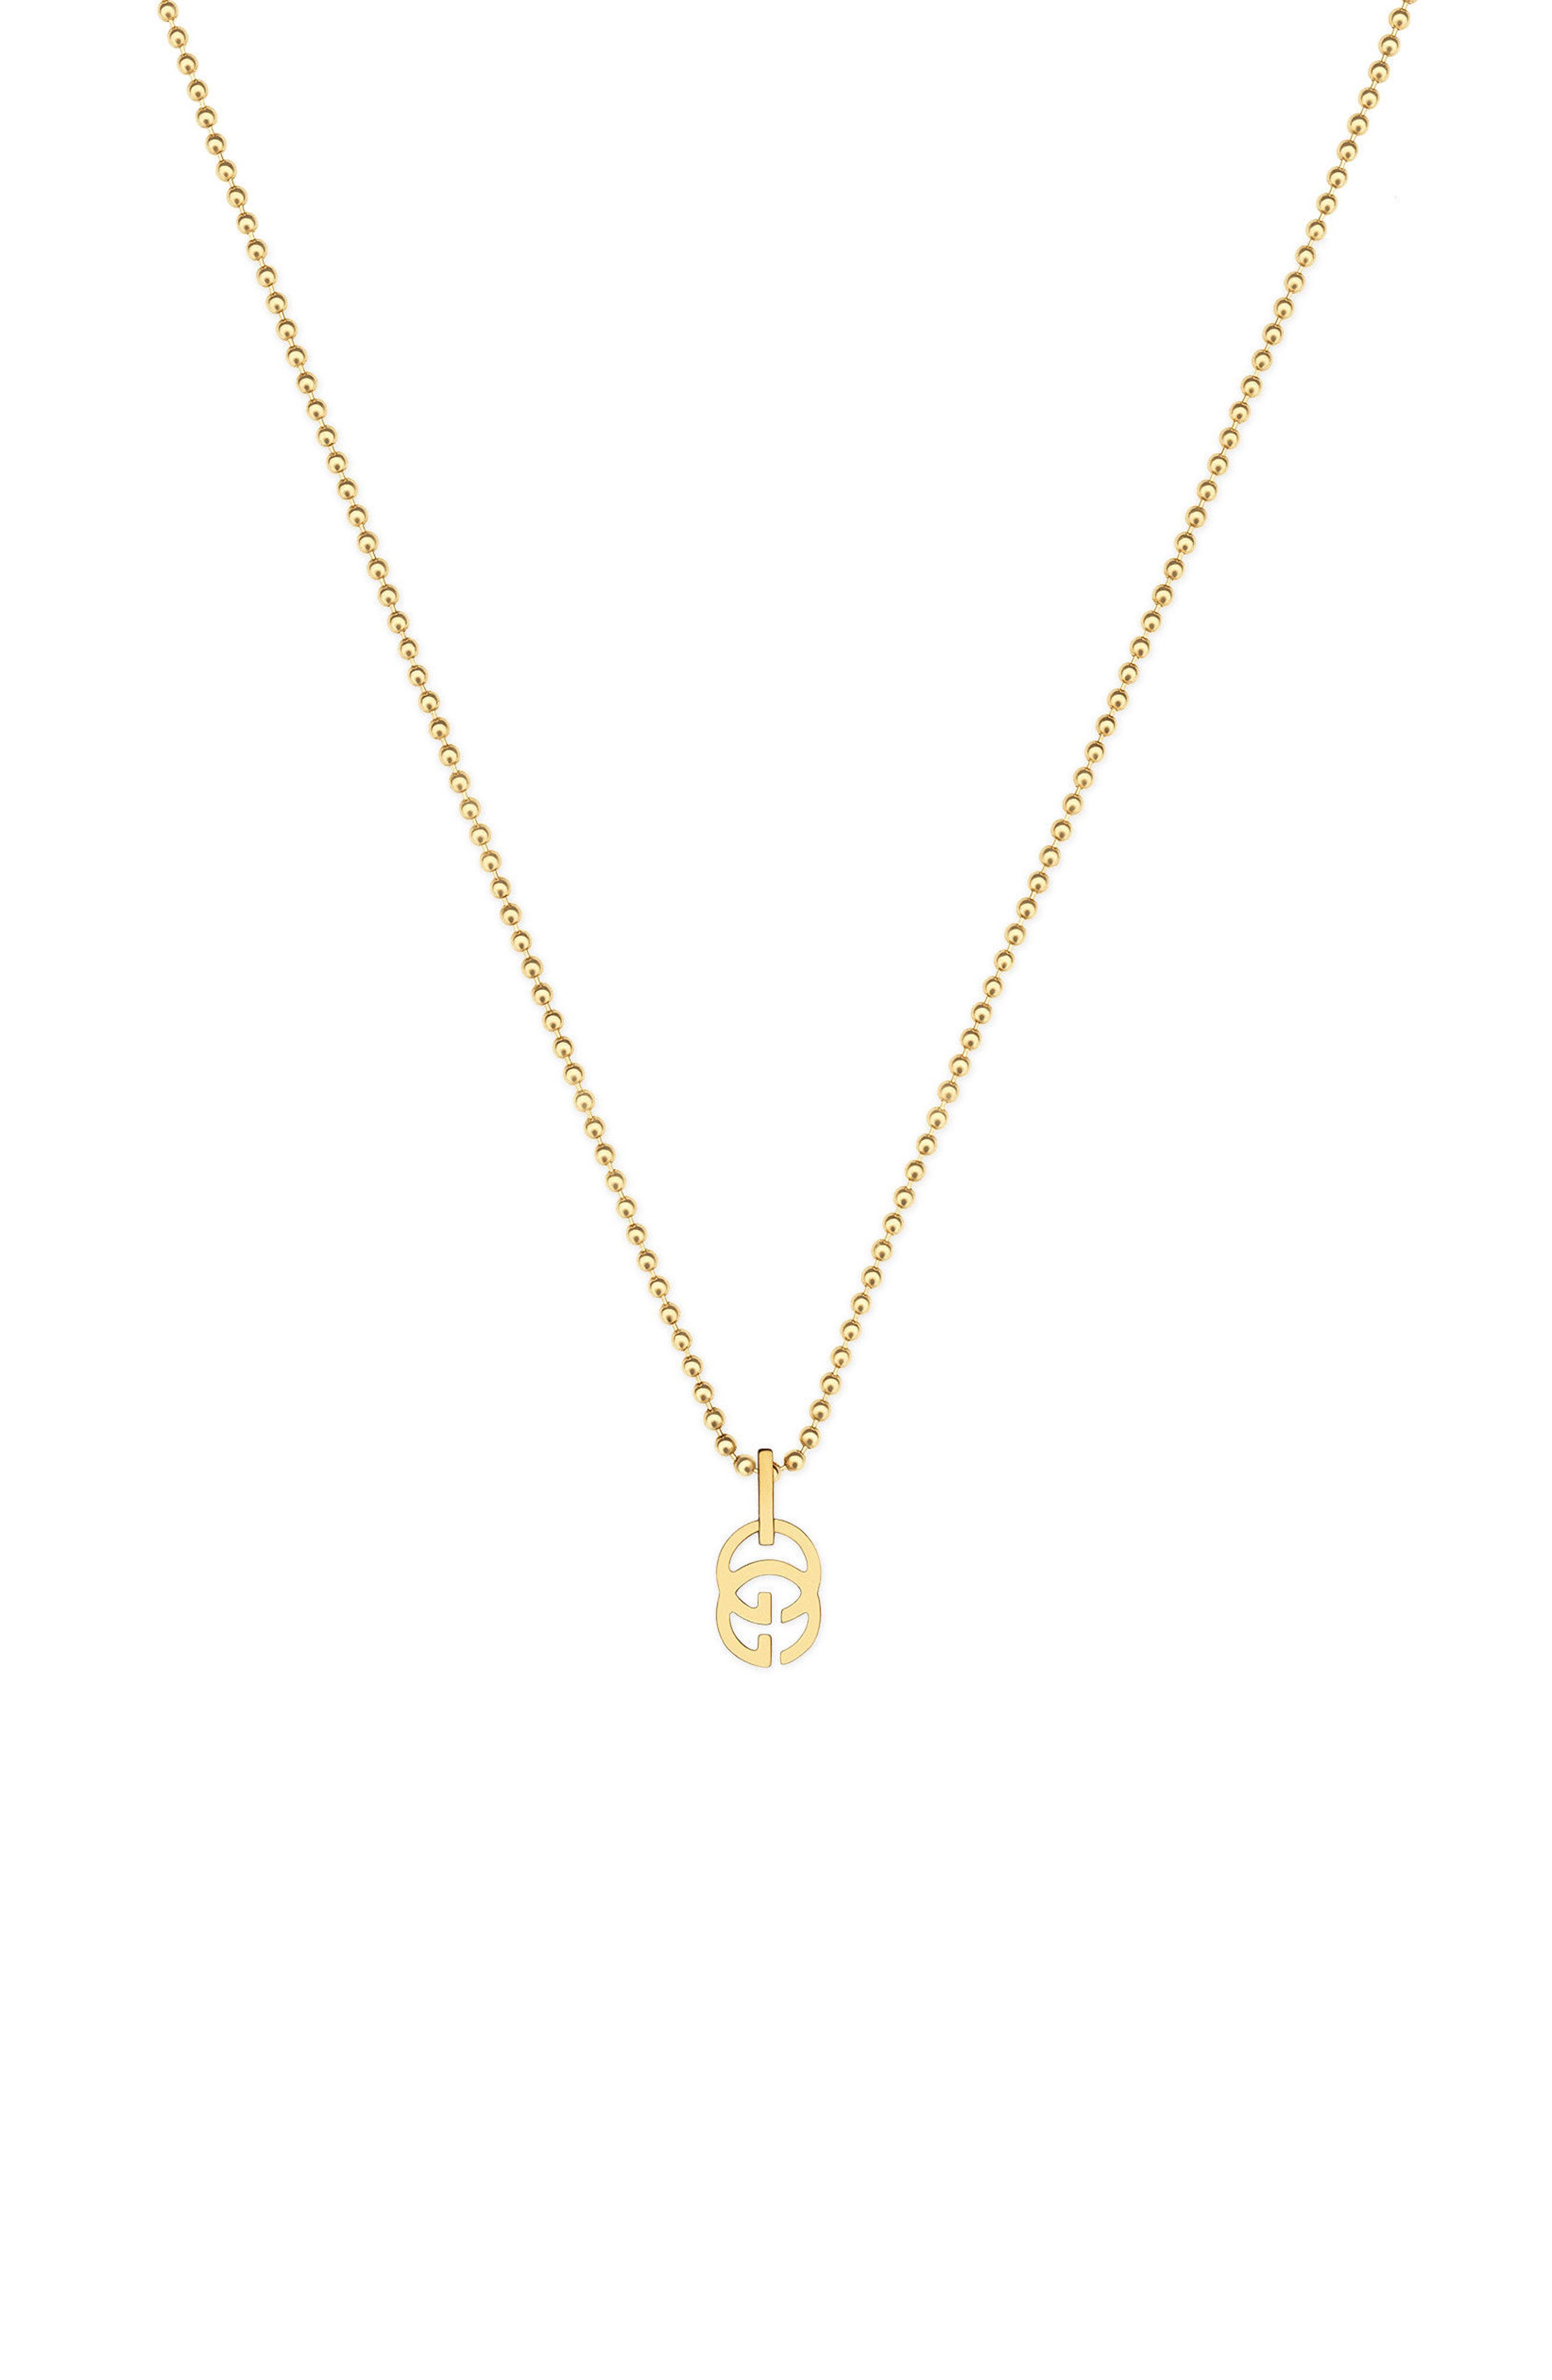 Alternate Image 1 Selected - Gucci Double-G Pendant Necklace